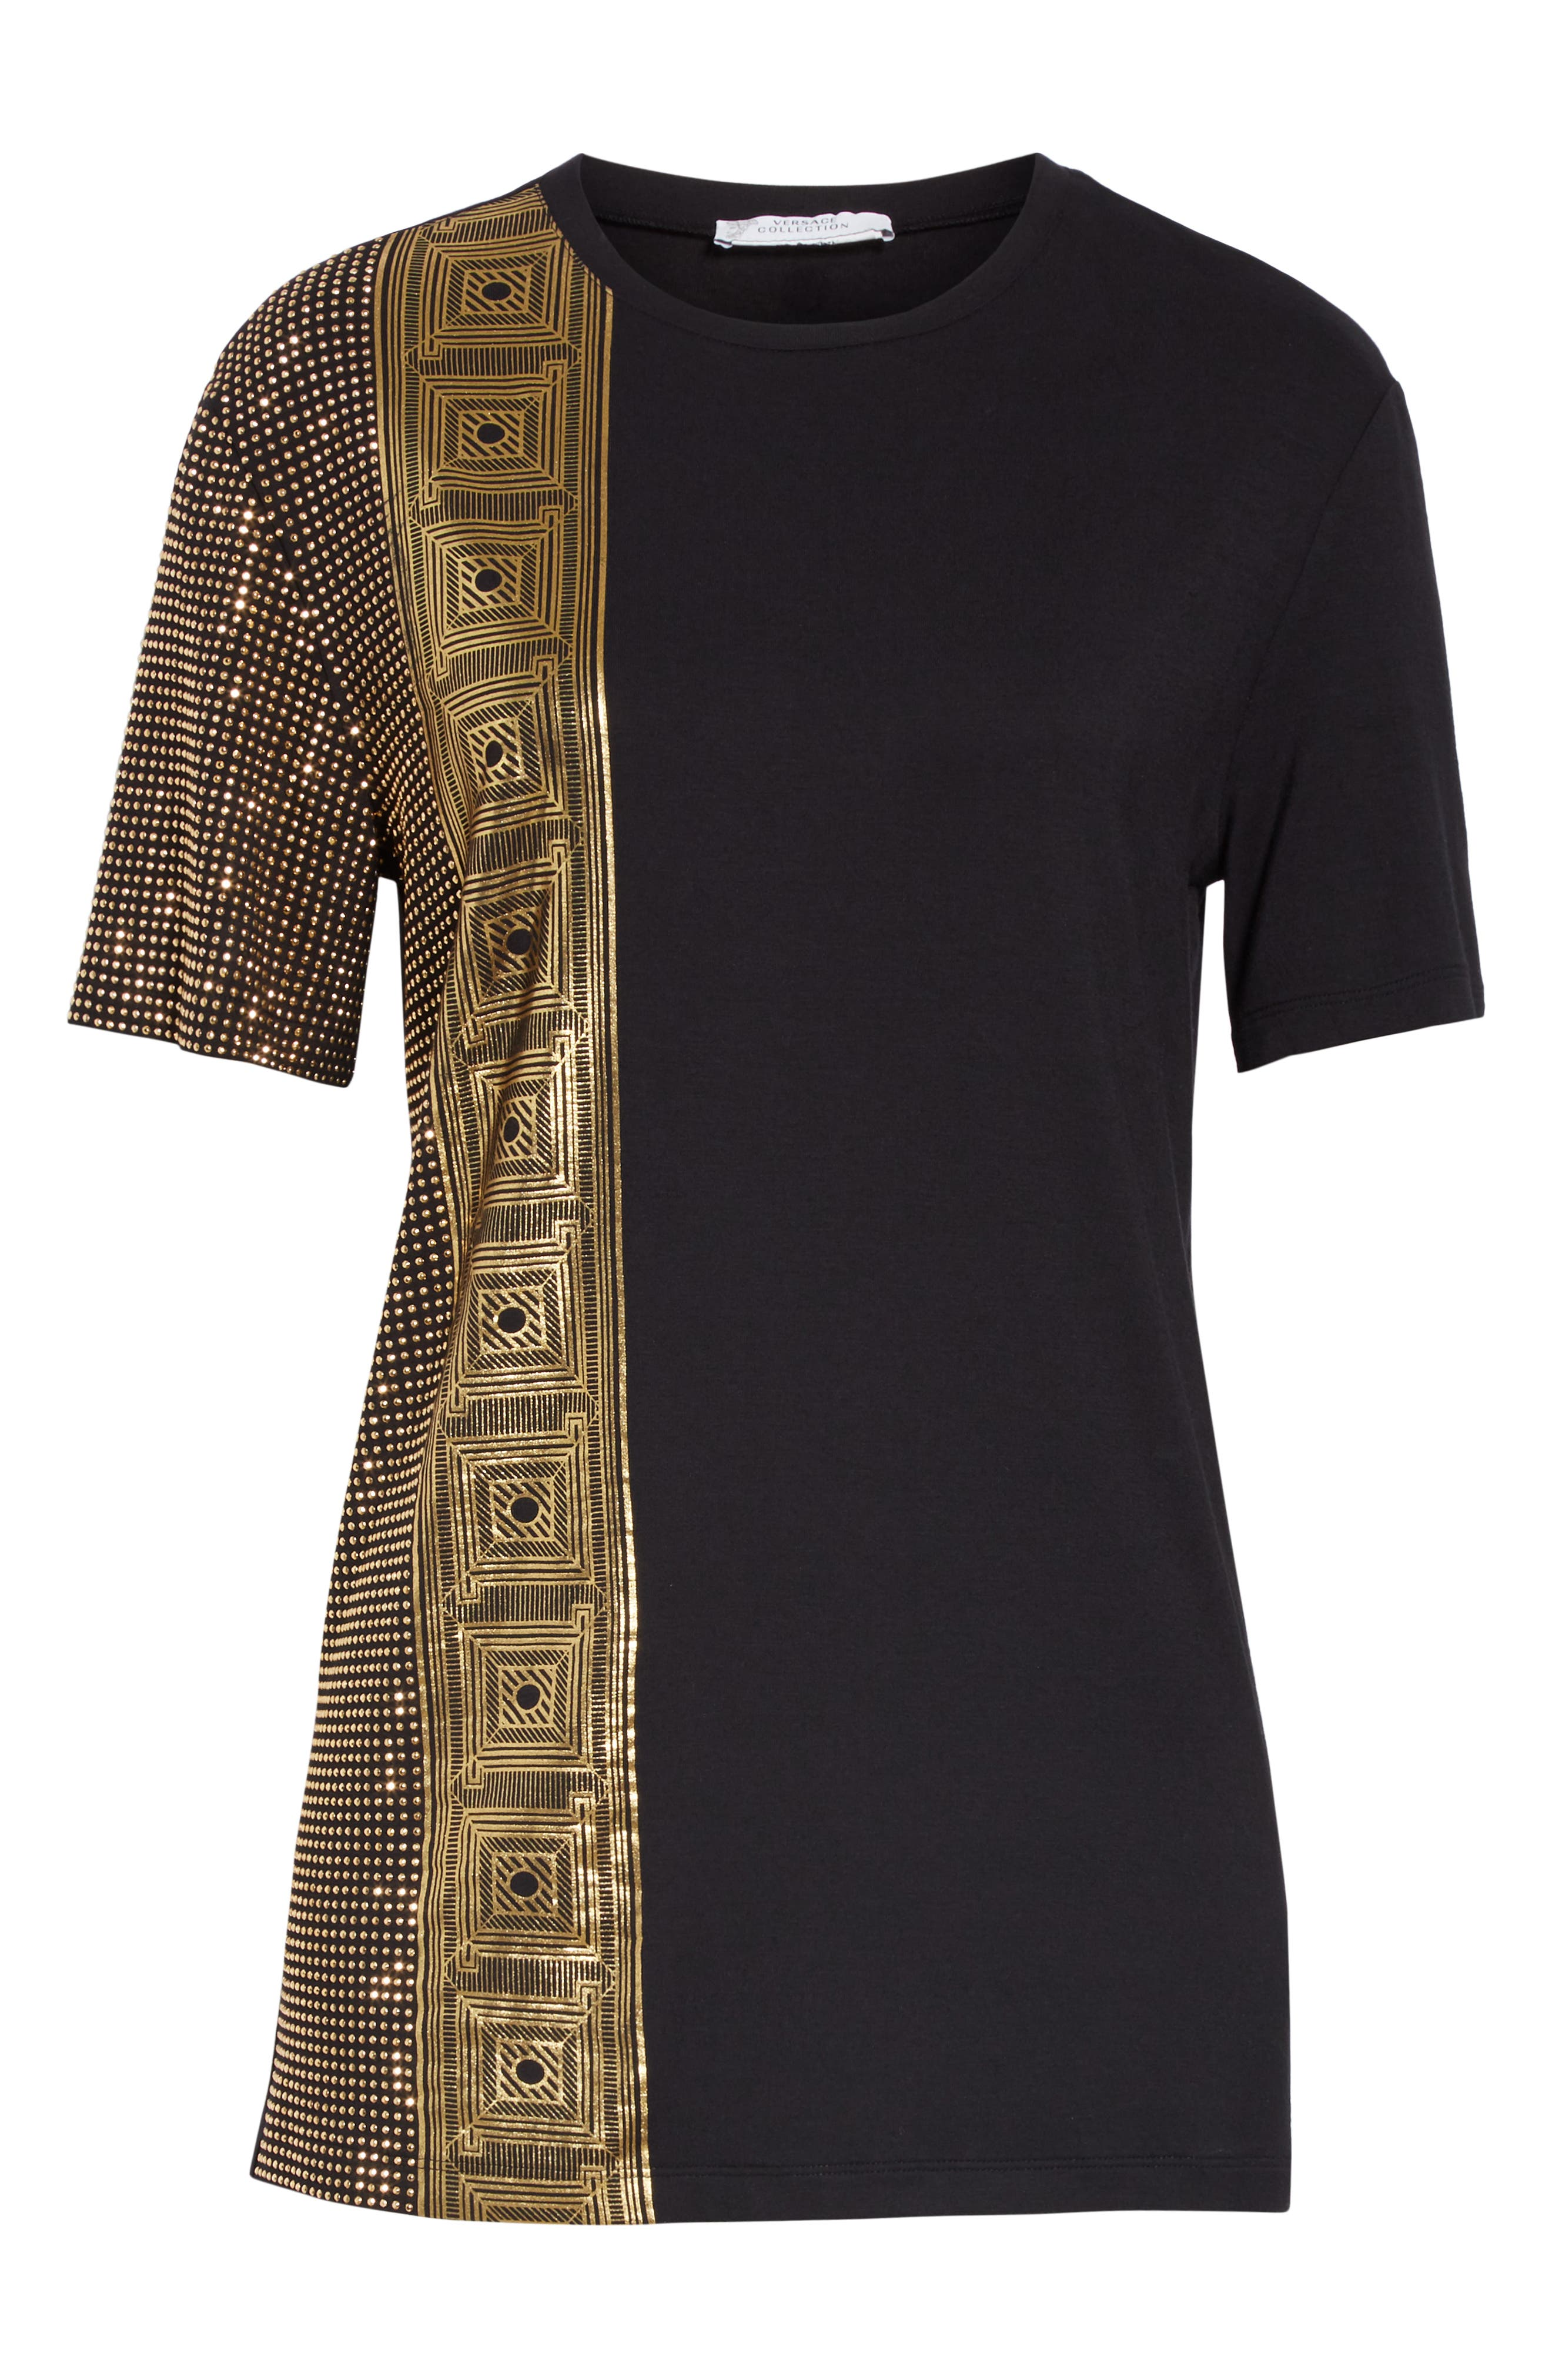 VERSACE COLLECTION, Embellished Tee, Alternate thumbnail 6, color, BLACK